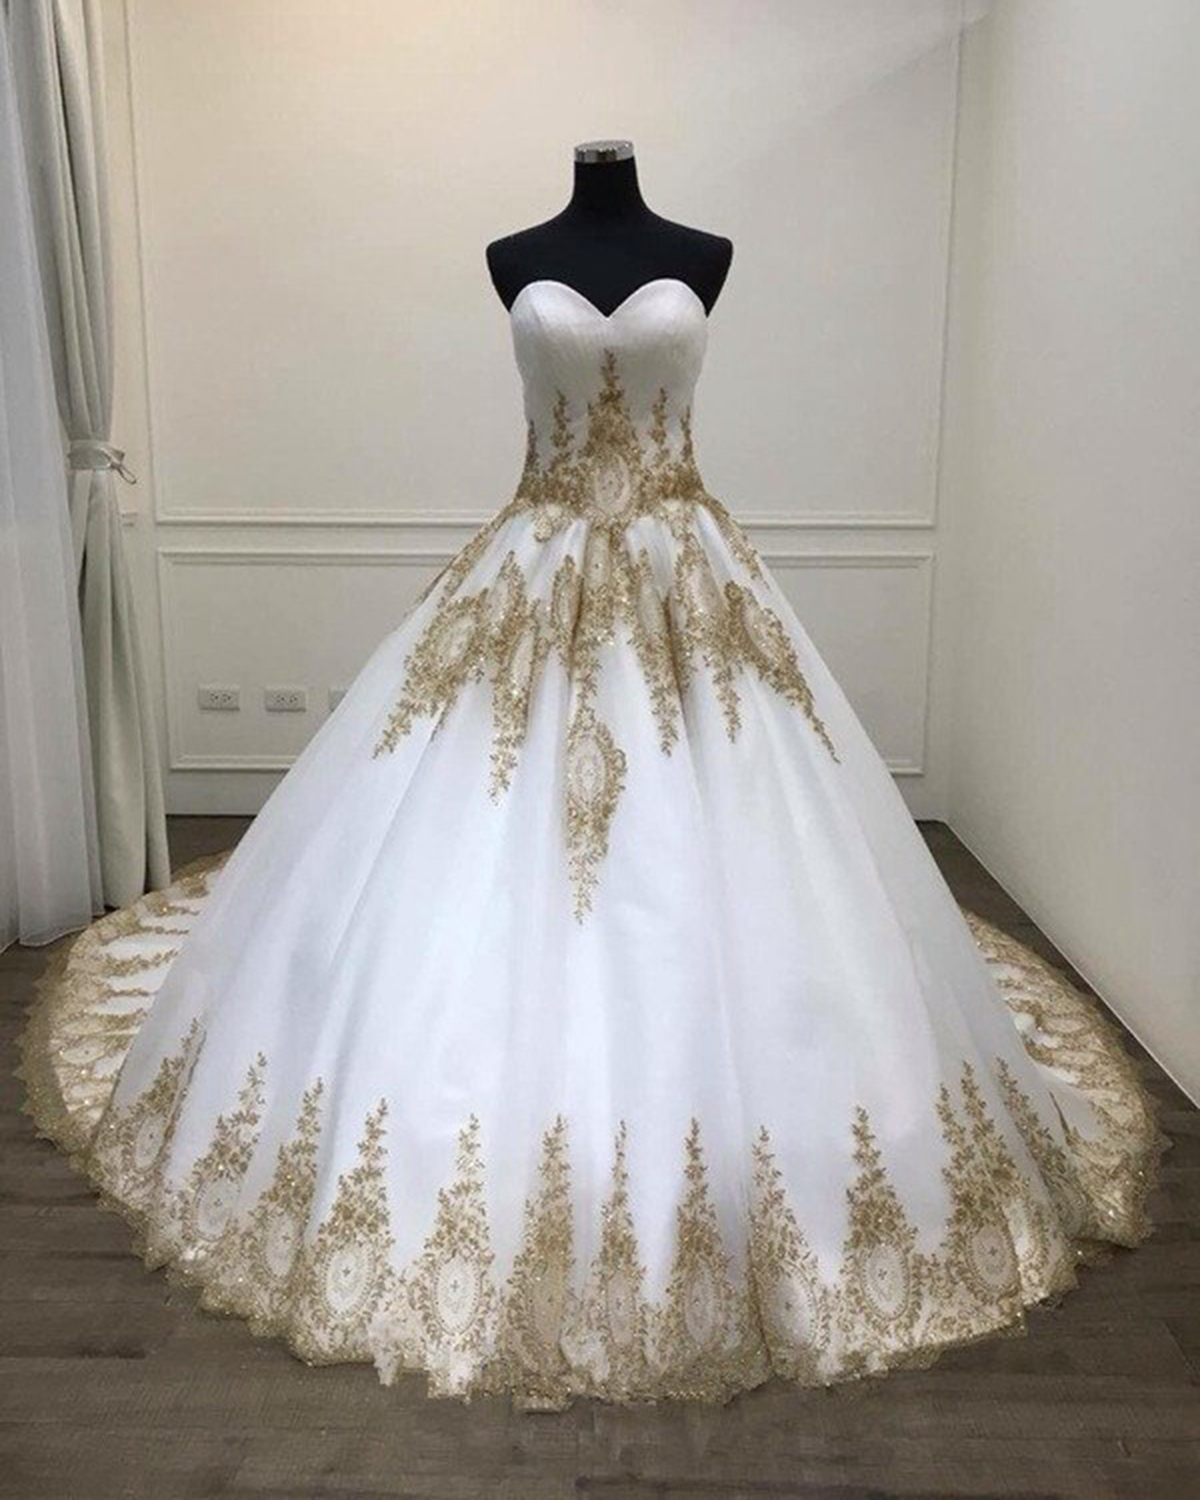 White Ball Gown Quinceanera Dresses Big Wedding Dress With Gold